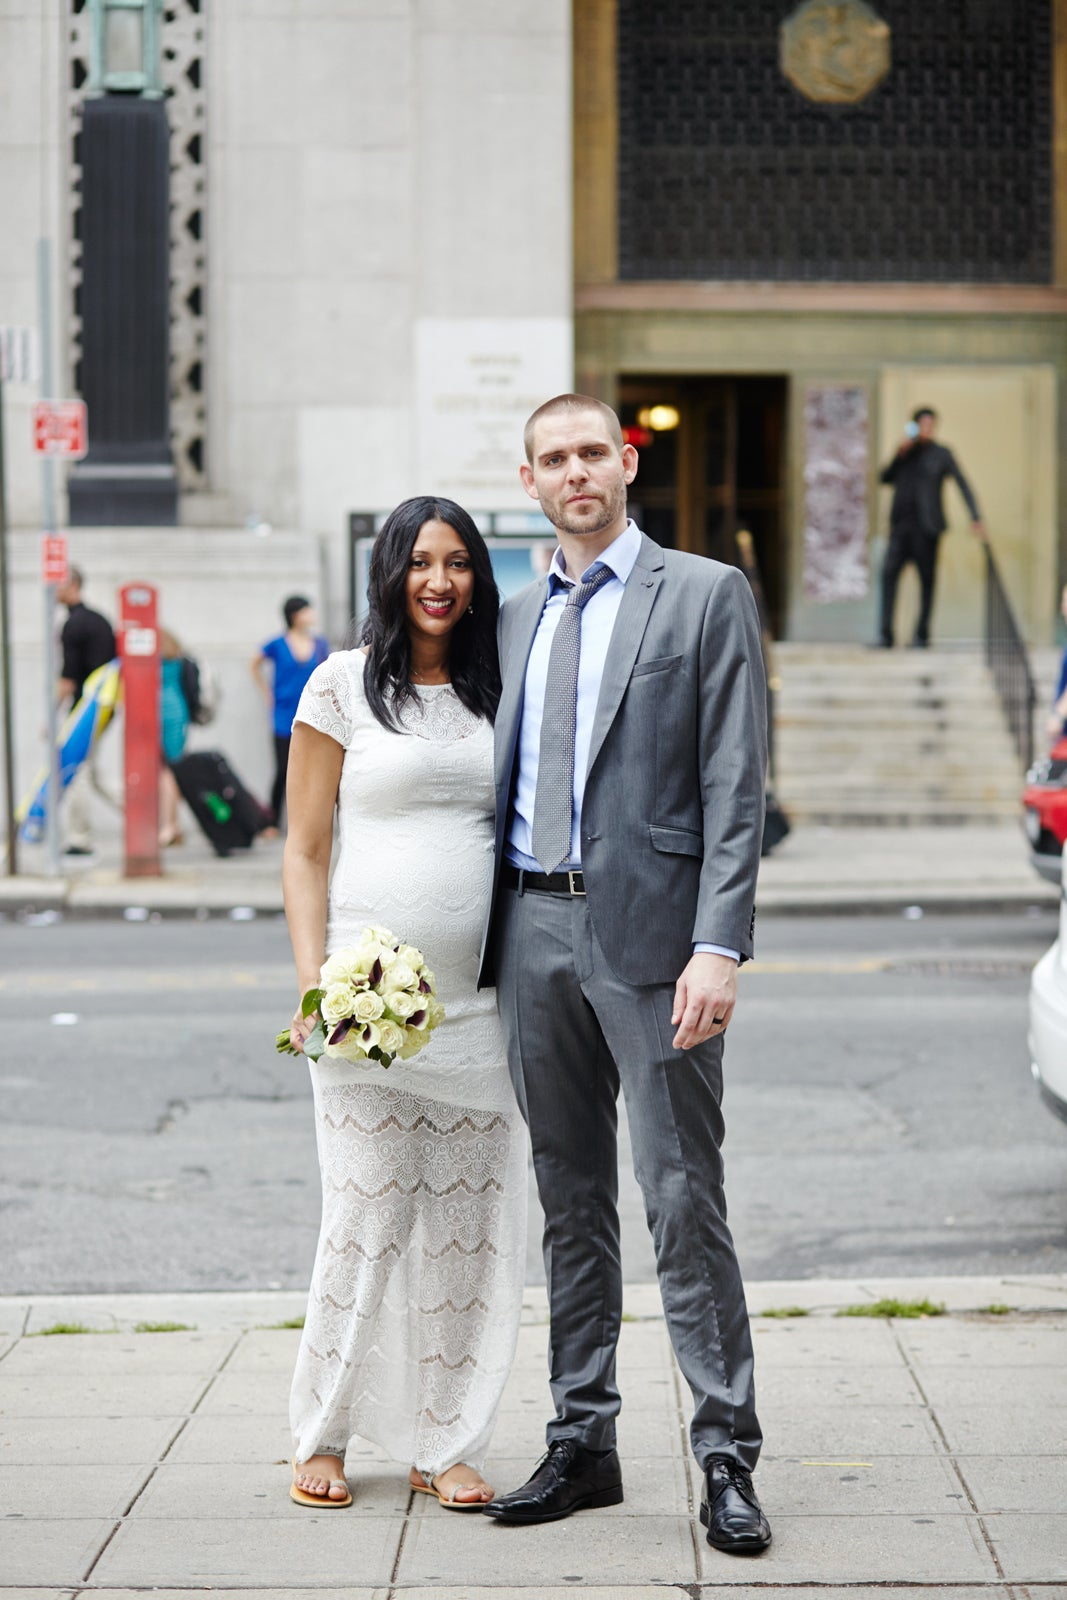 Courthouse Wedding Dress.City Hall Wedding Outfits Casual Bridal Gowns